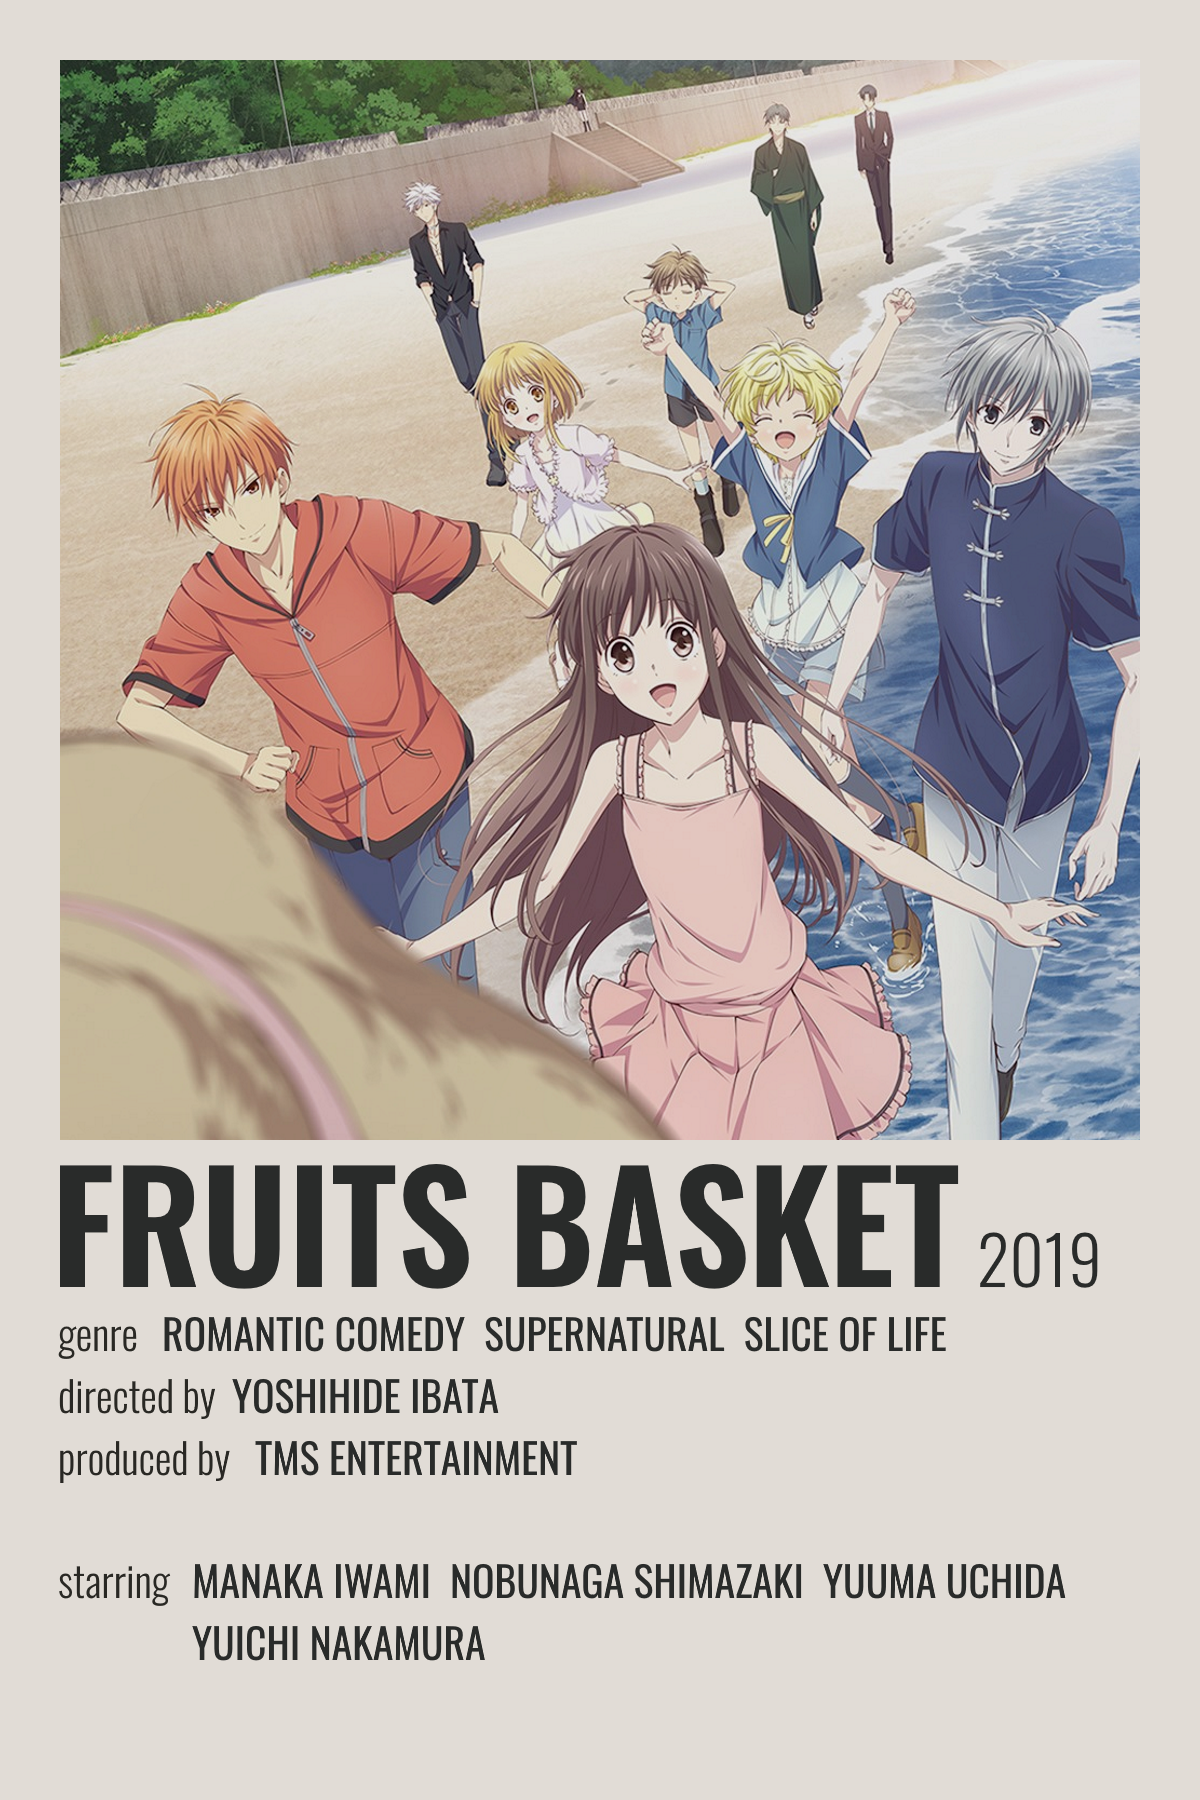 fruits basket poster in 2021 anime